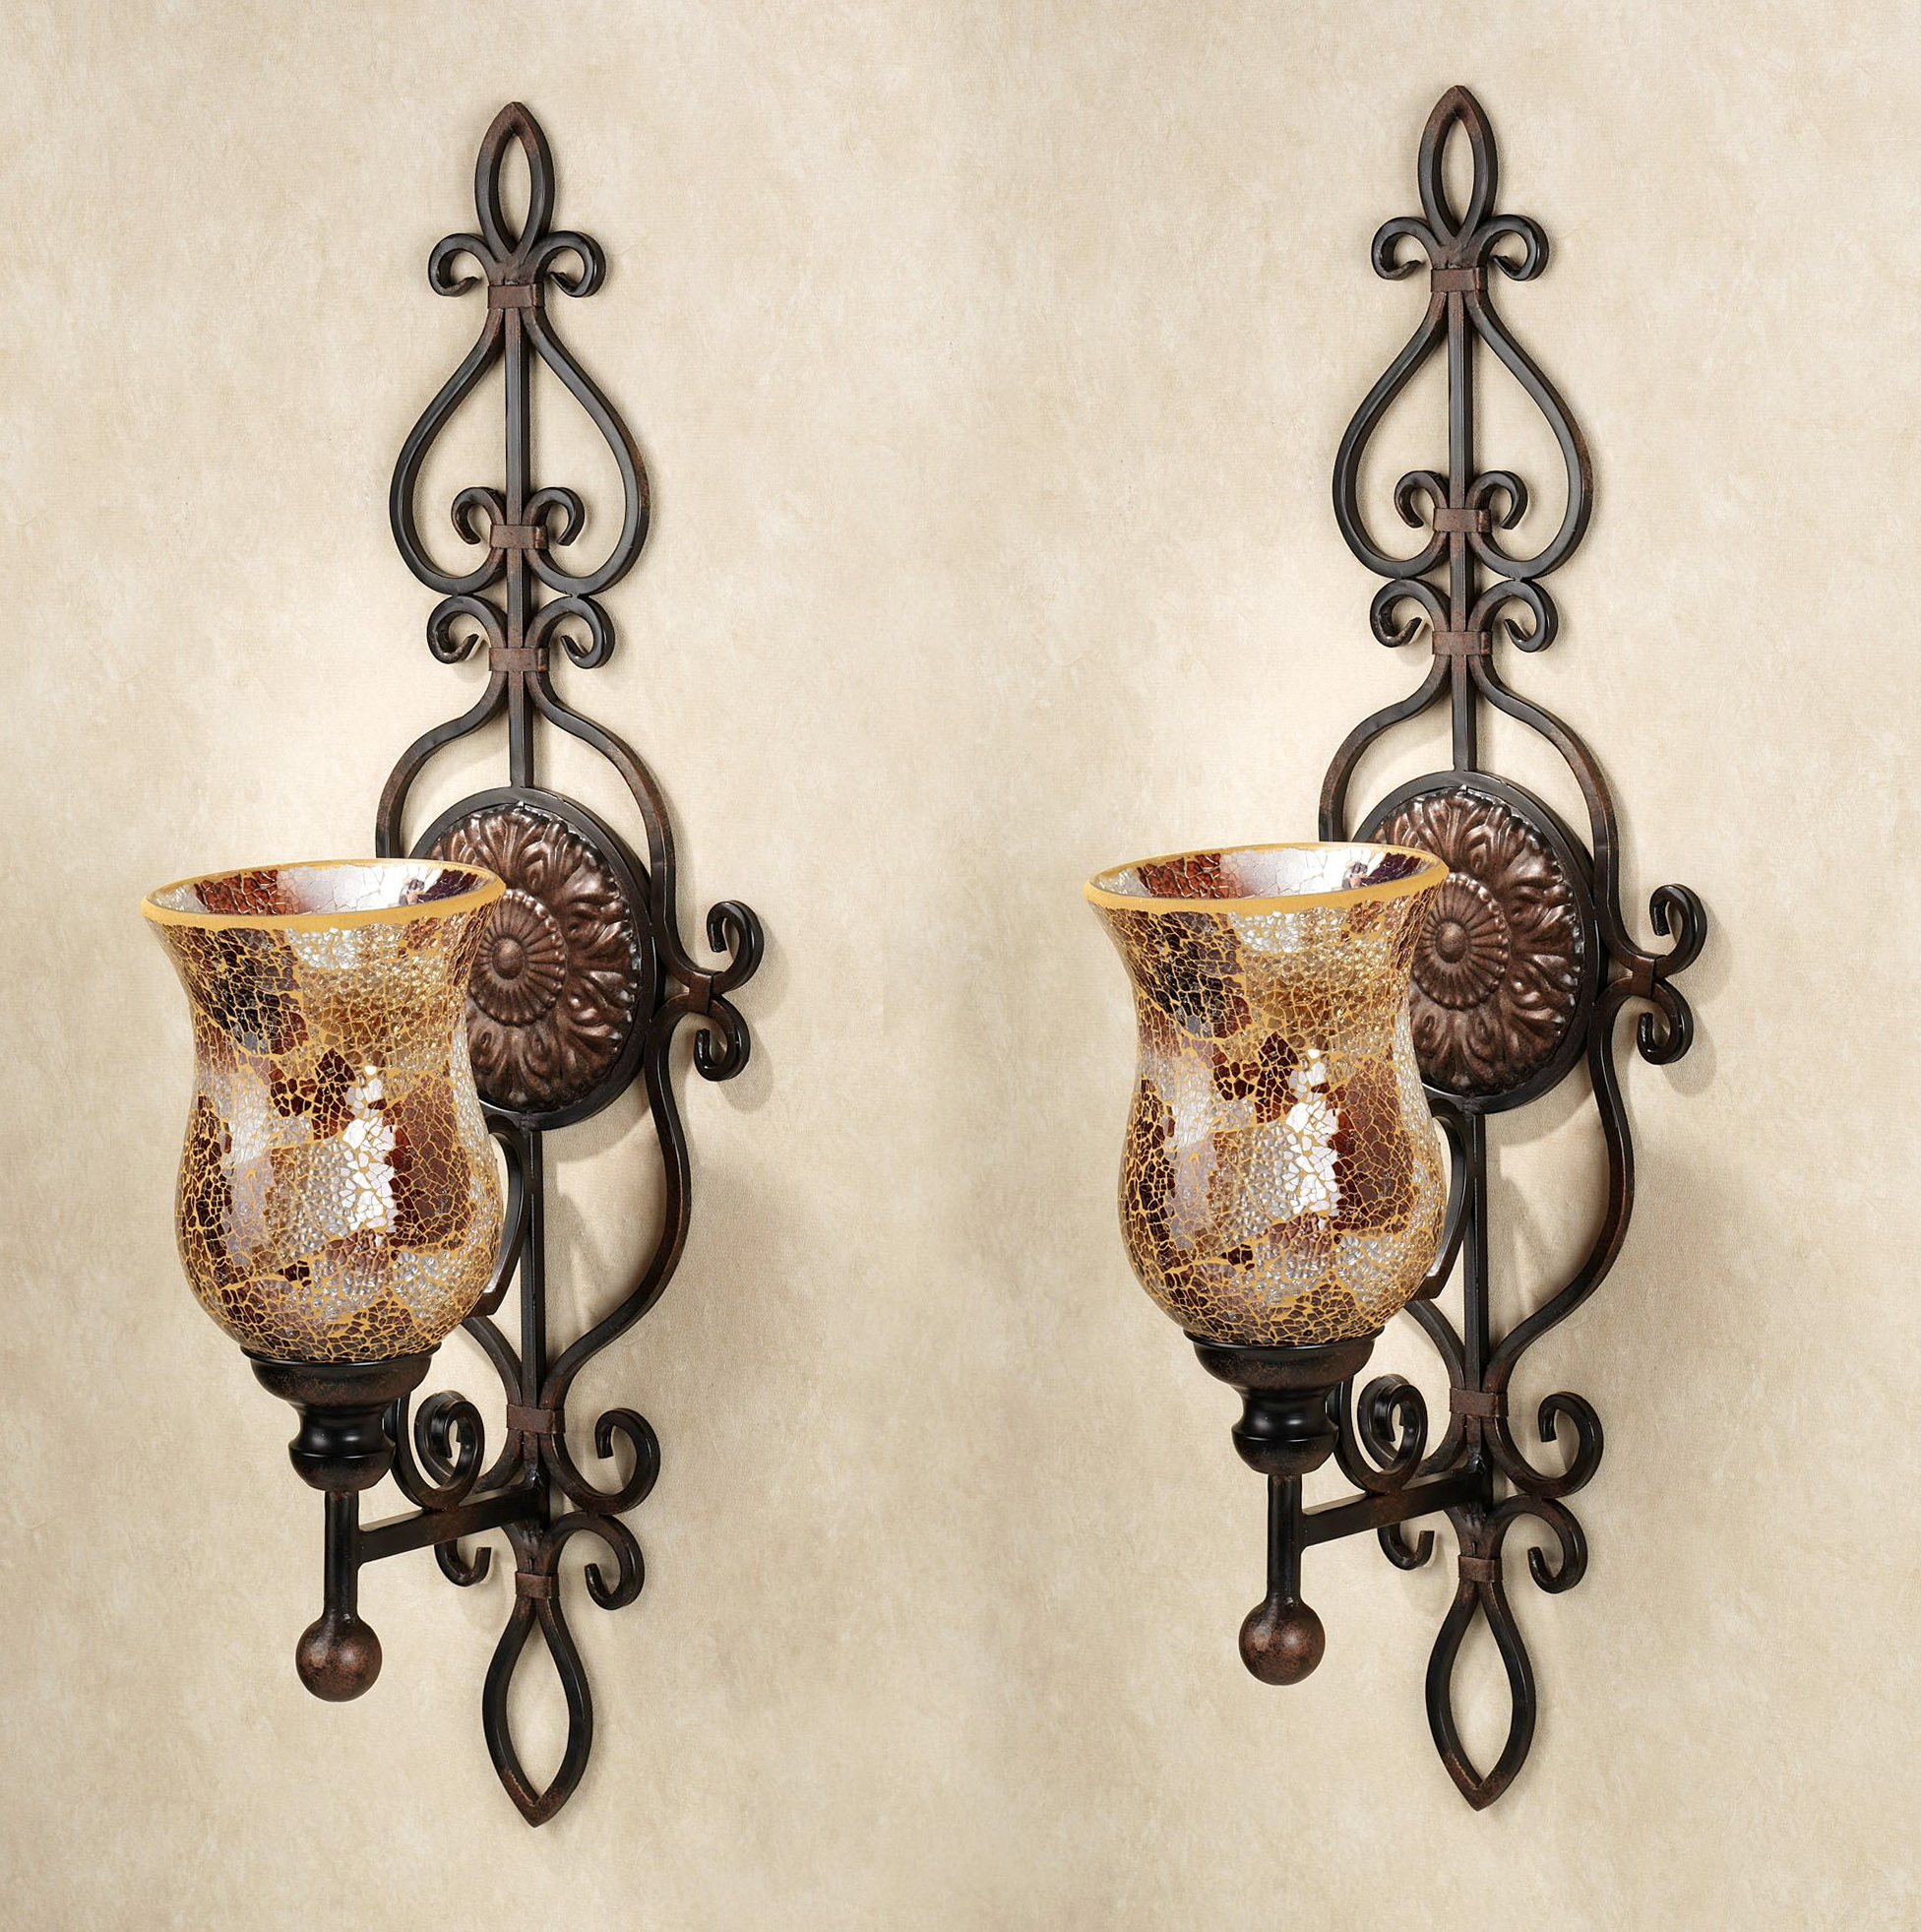 Decorative Wall Sconces Candle Holders | Sant Interior for Metal Wall Decor By Charlton Home (Image 10 of 30)